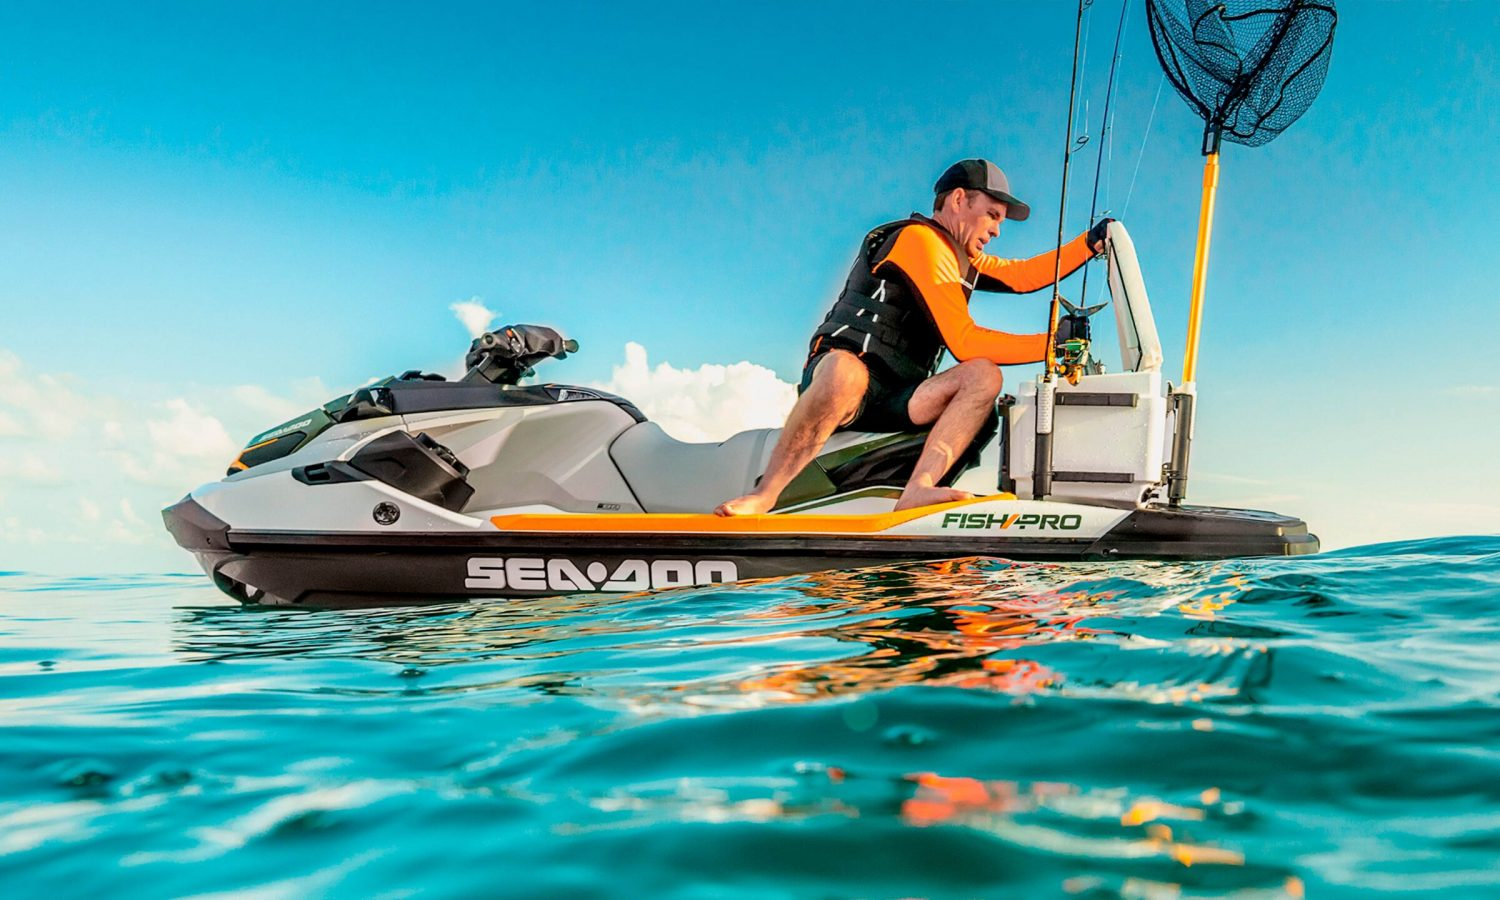 Fisherman is putting his fish in the Sea-Doo FISH Pro cooler